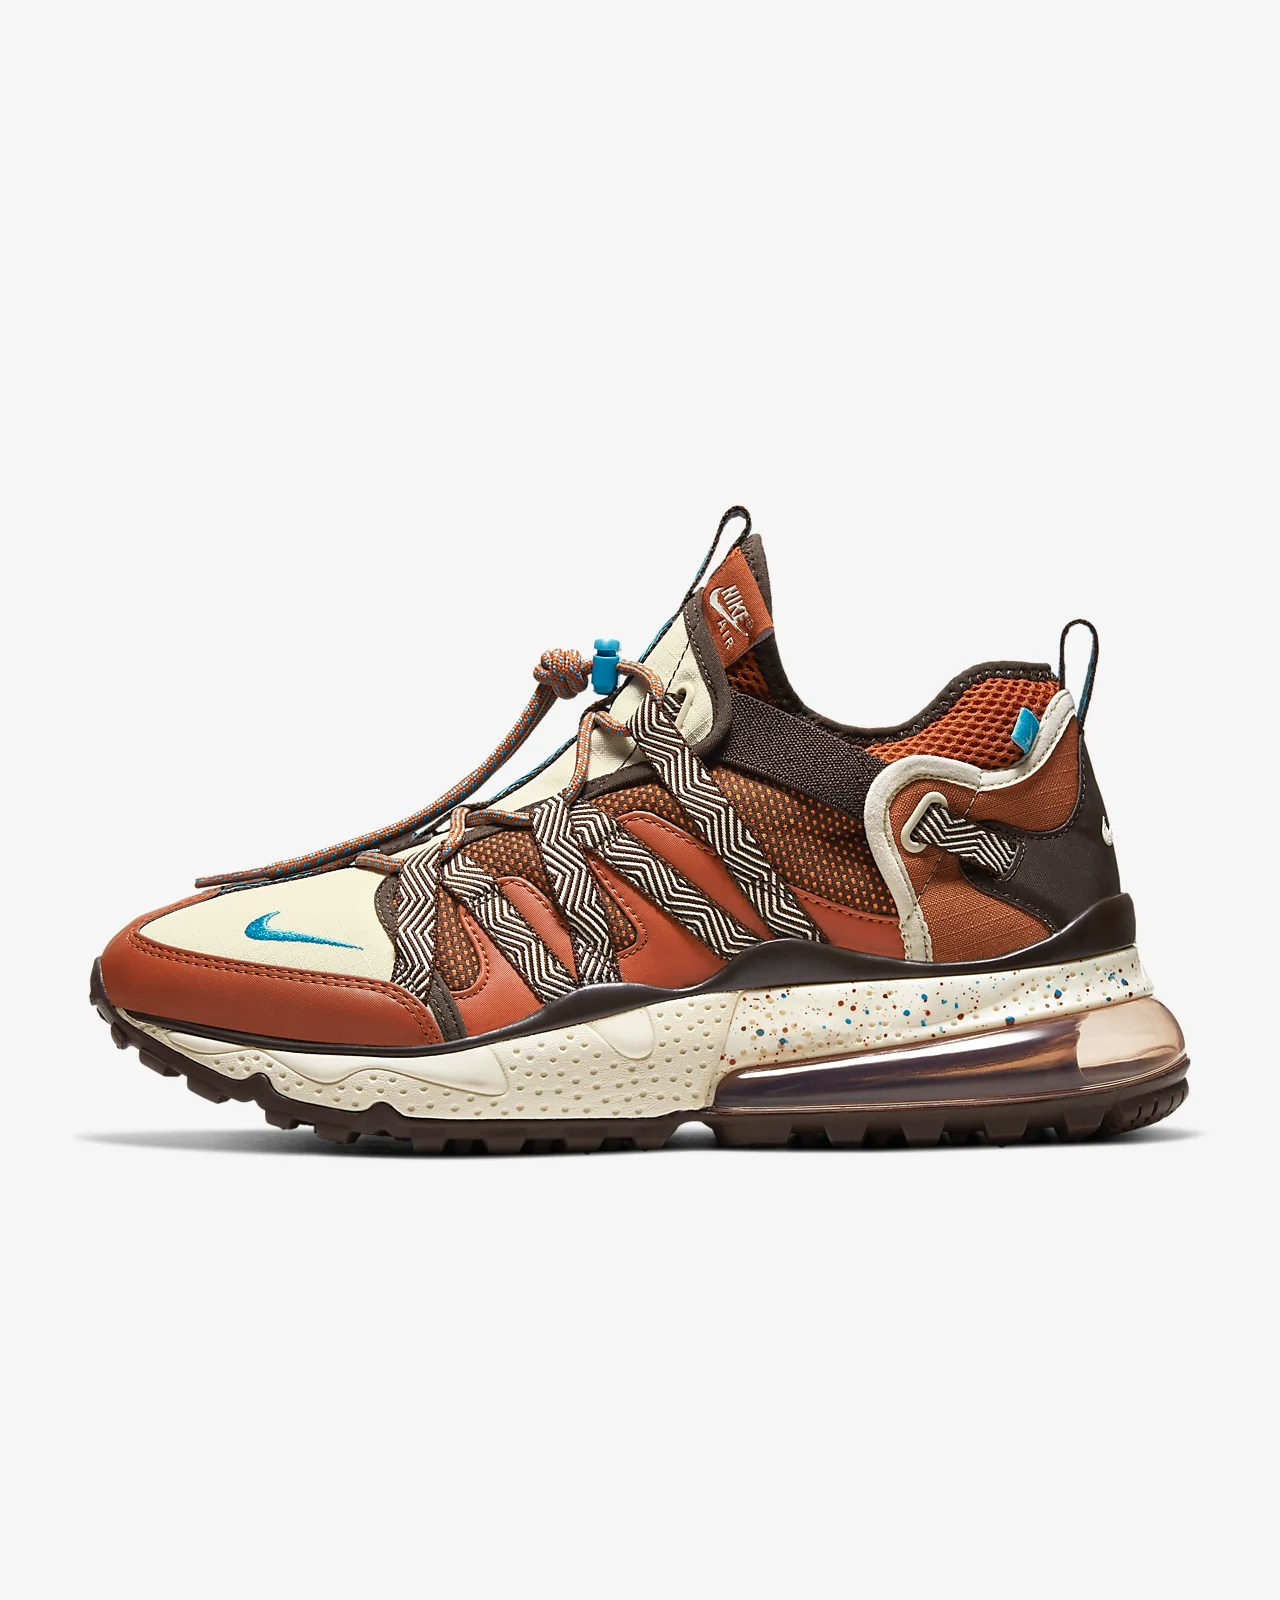 Air Max Running Nike Air Max 270 Bowfin Men S Shoe